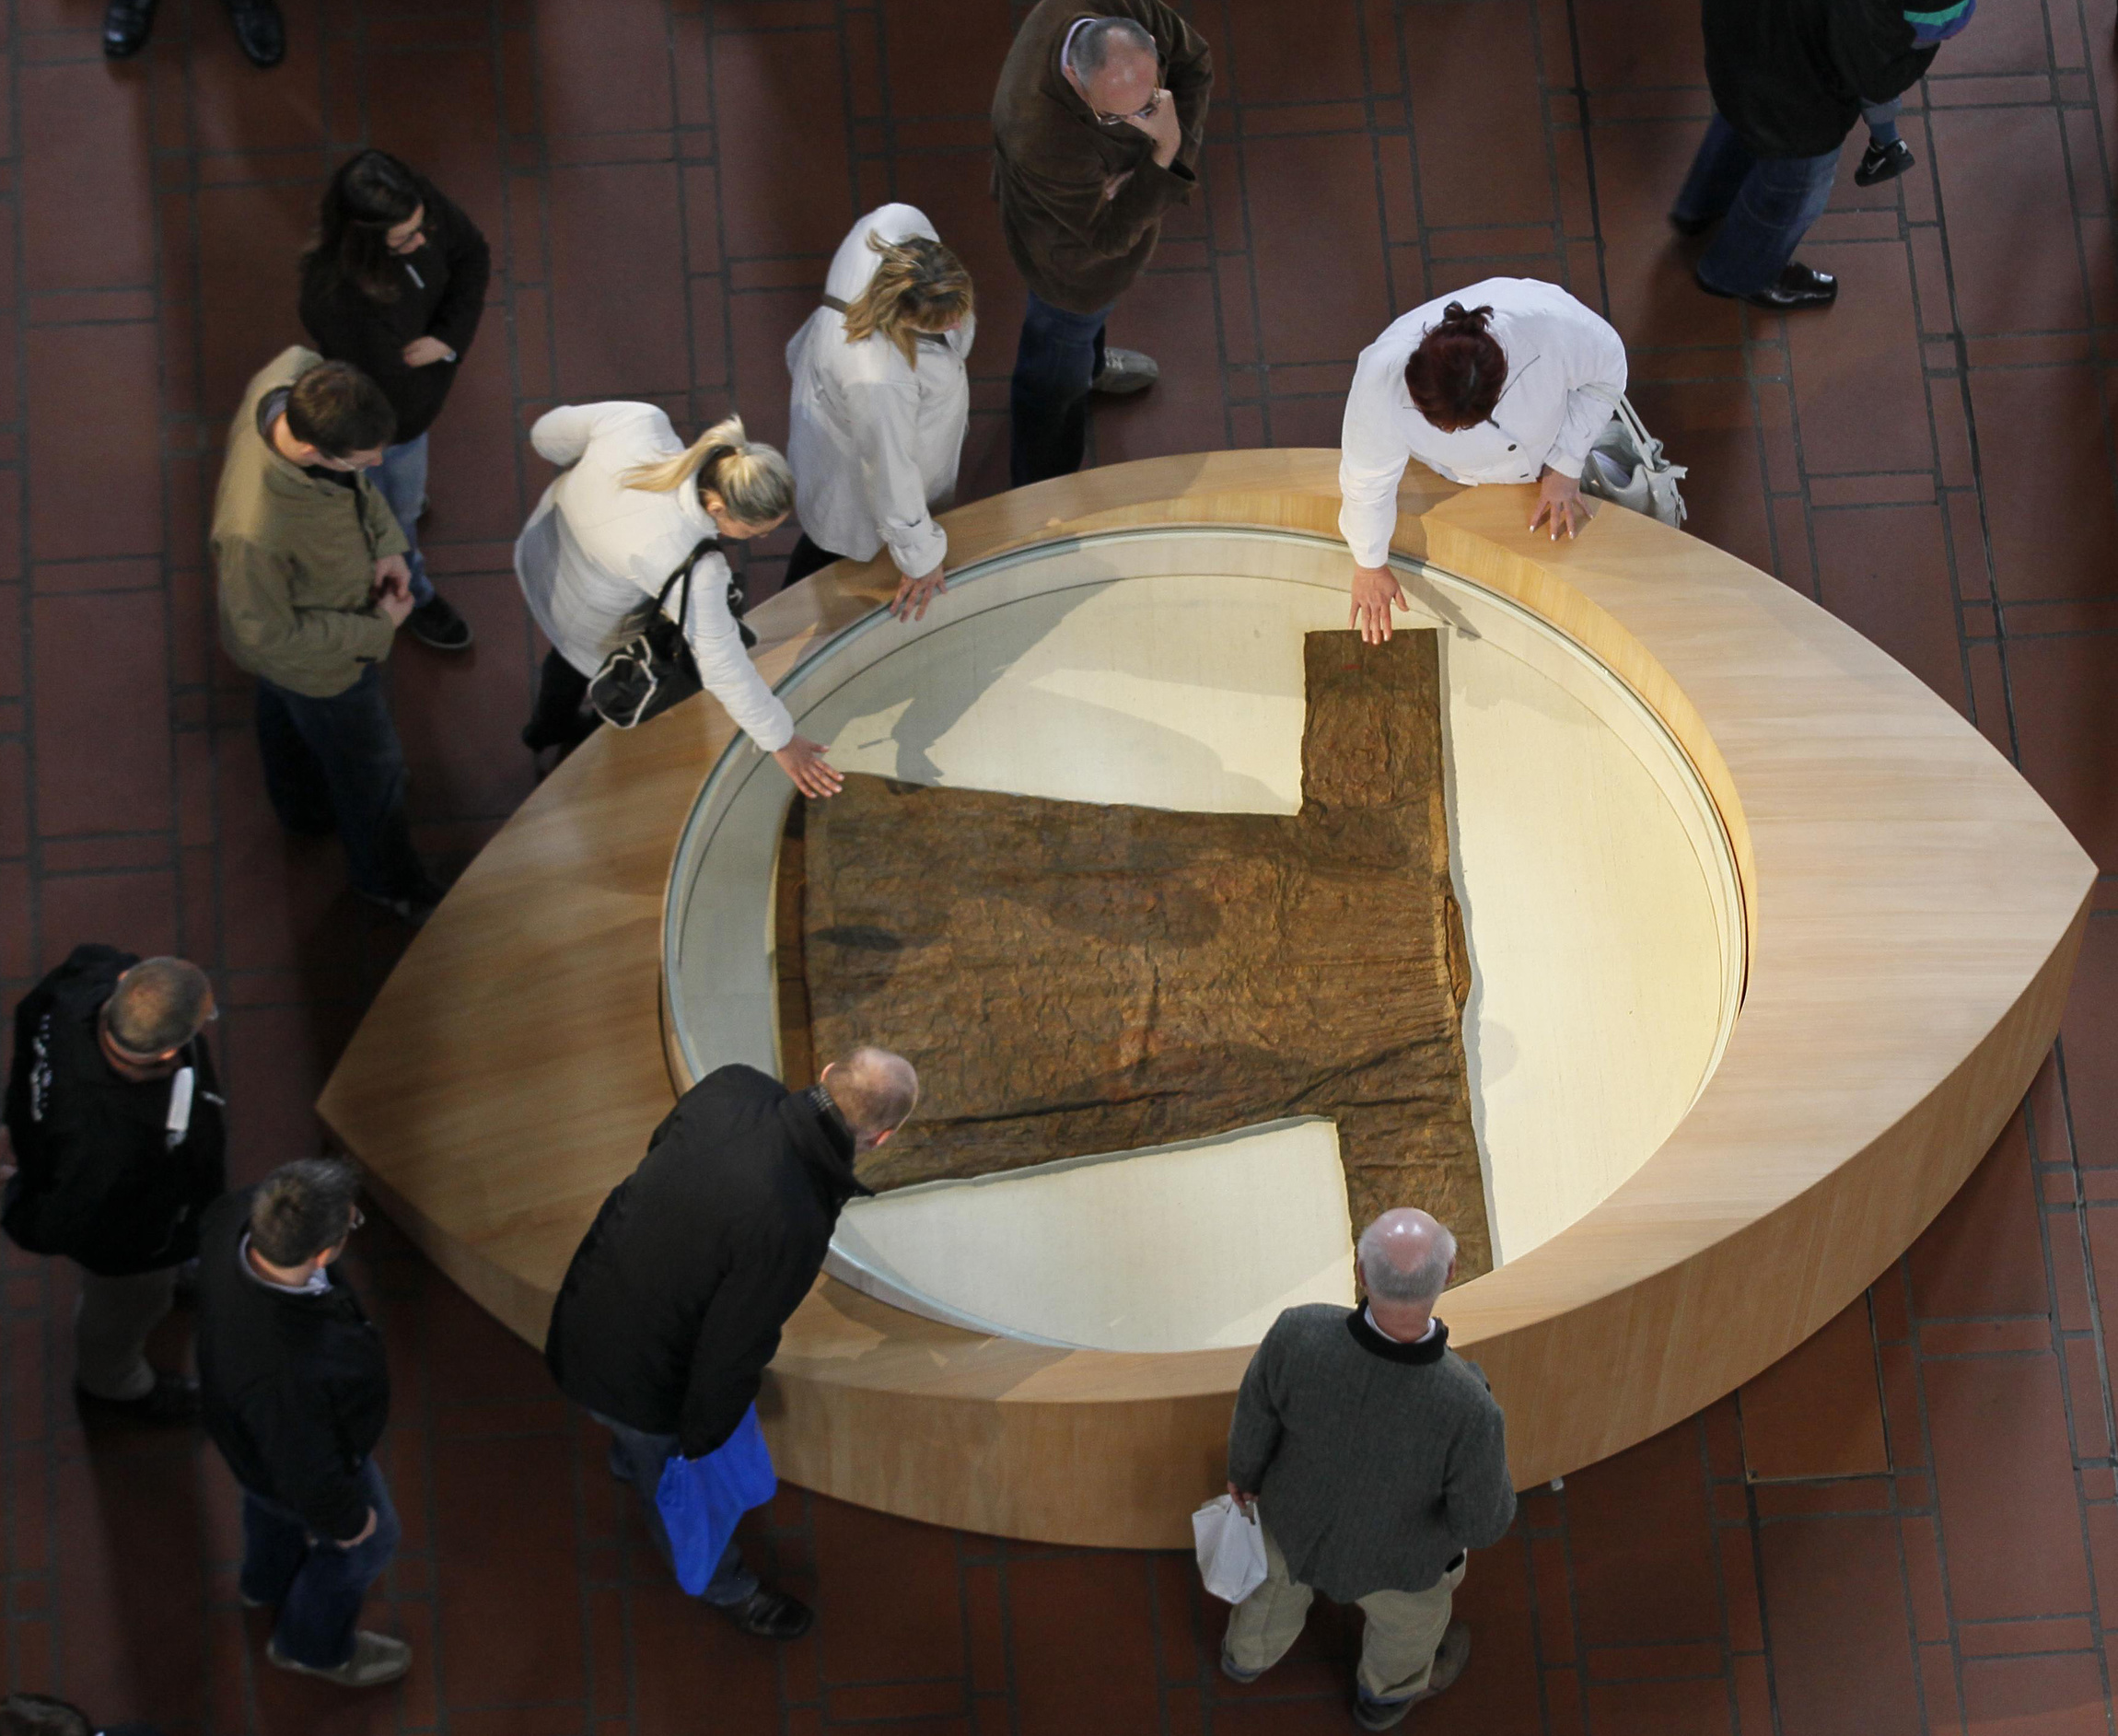 "PILGRIMS TOUCH CASING CONTAINING ROBE REPORTEDLY WORN BY CHRIST ON DISPLAY AT CATHEDRAL IN GERMANY--Pilgrims touched a casing containing the ""'Holy Robe"" in the cathedral in Trier, Germany, April 15. The ancient town of Trier marks the 500th anniversary of the first public appearance of the Seamless Robe of Jesus, reportedly worn during, or shortly before his crucifixion. Some 500,000 pilgrims are expected to visit the relic through May 13. (CNS photo/Wolfgang Rattay, Reuters)"